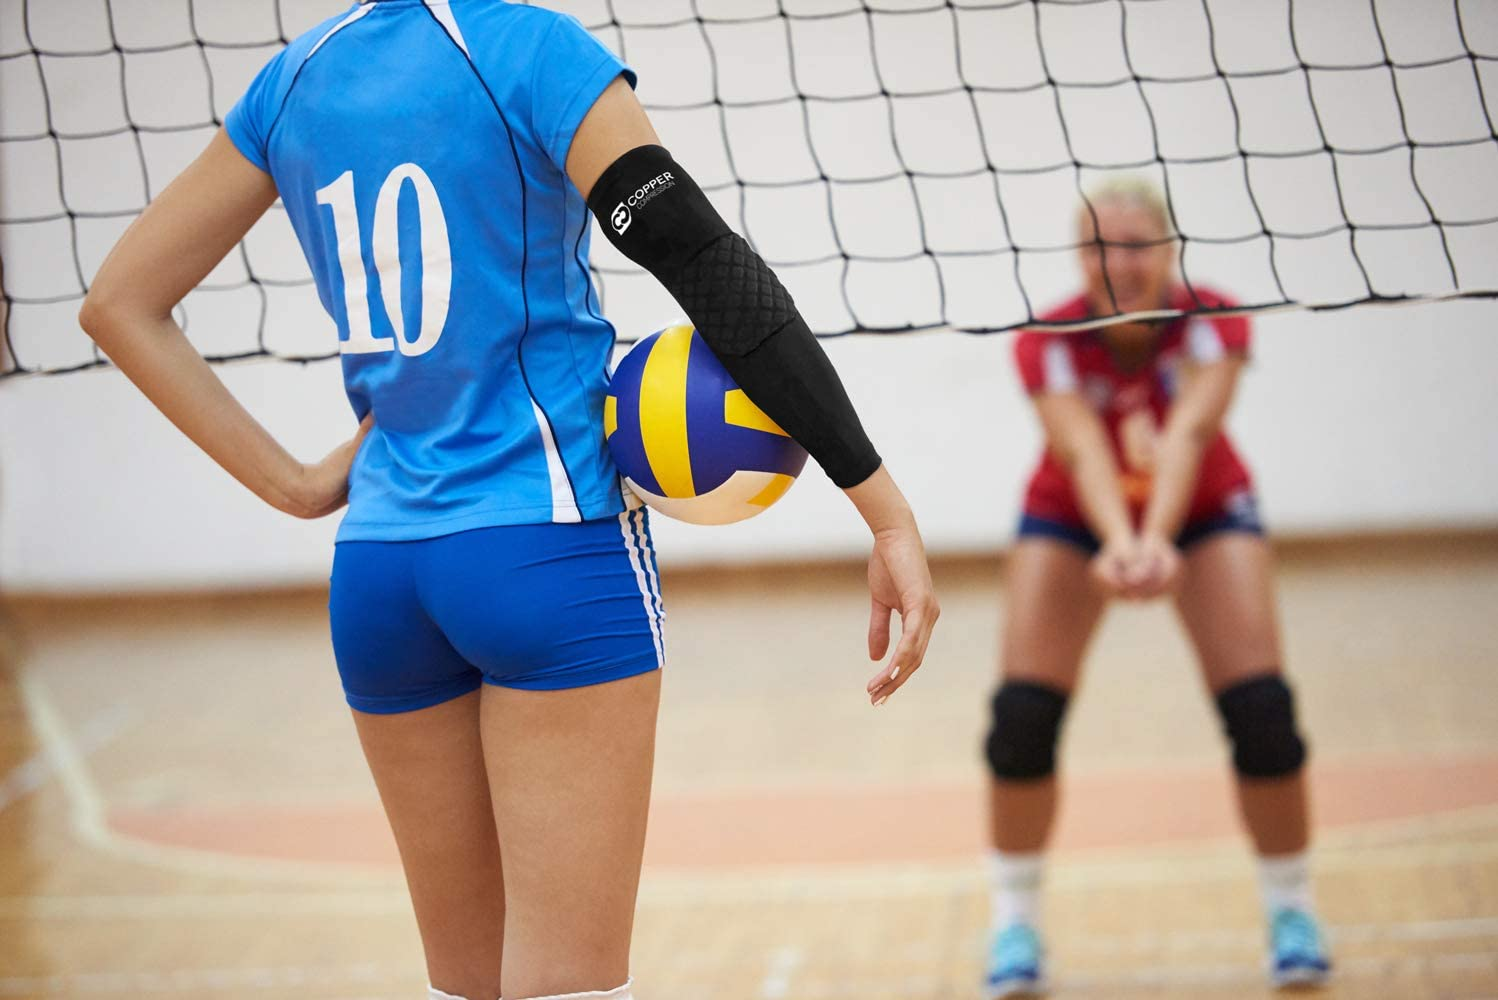 Large//XL Authorized Retailer of Volleyball Passing Sleeves